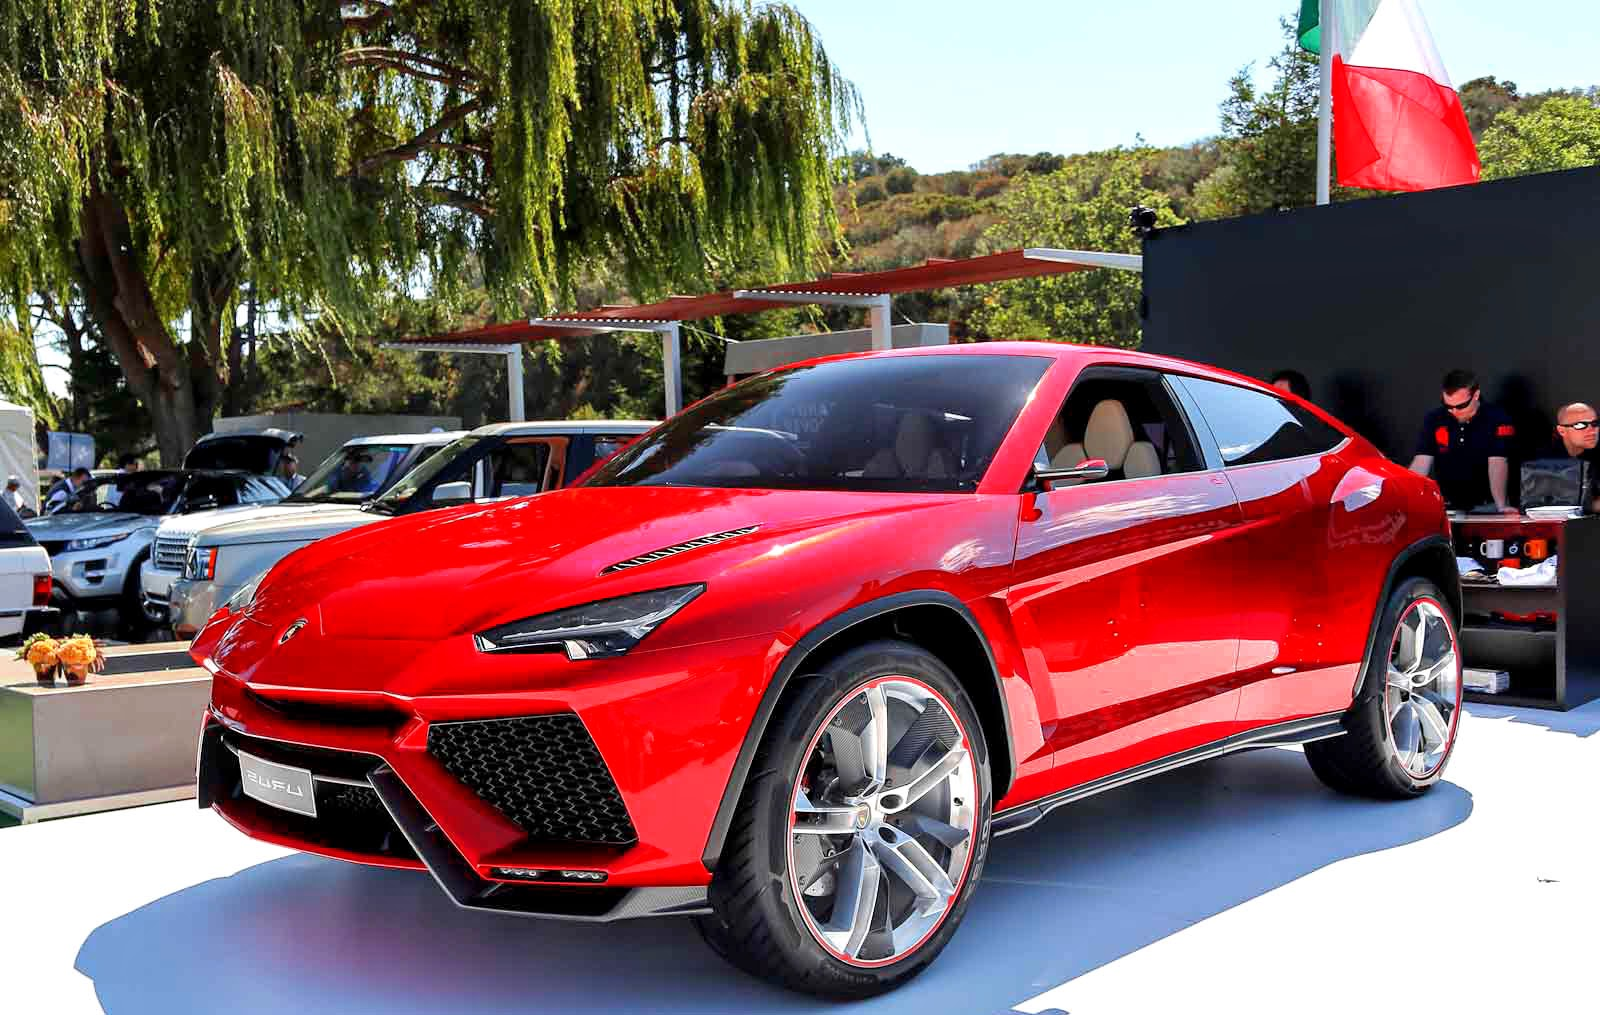 lamborghini aventador cost html with Lamborghini Urus Suv on Honda Jazz With Lamborghini Aventador as well E3 83 A9 E3 83 B3 E3 83 9C E3 83 AB E3 82 AE E3 83 BC E3 83 8B  E3 82 A6 E3 83 A9 E3 82 AB E3 83 B3 likewise Lamborghini Gallardo 2013 Makyaji Ile Geliyor besides Wallpaper 21 furthermore Exotic Cars All Model.